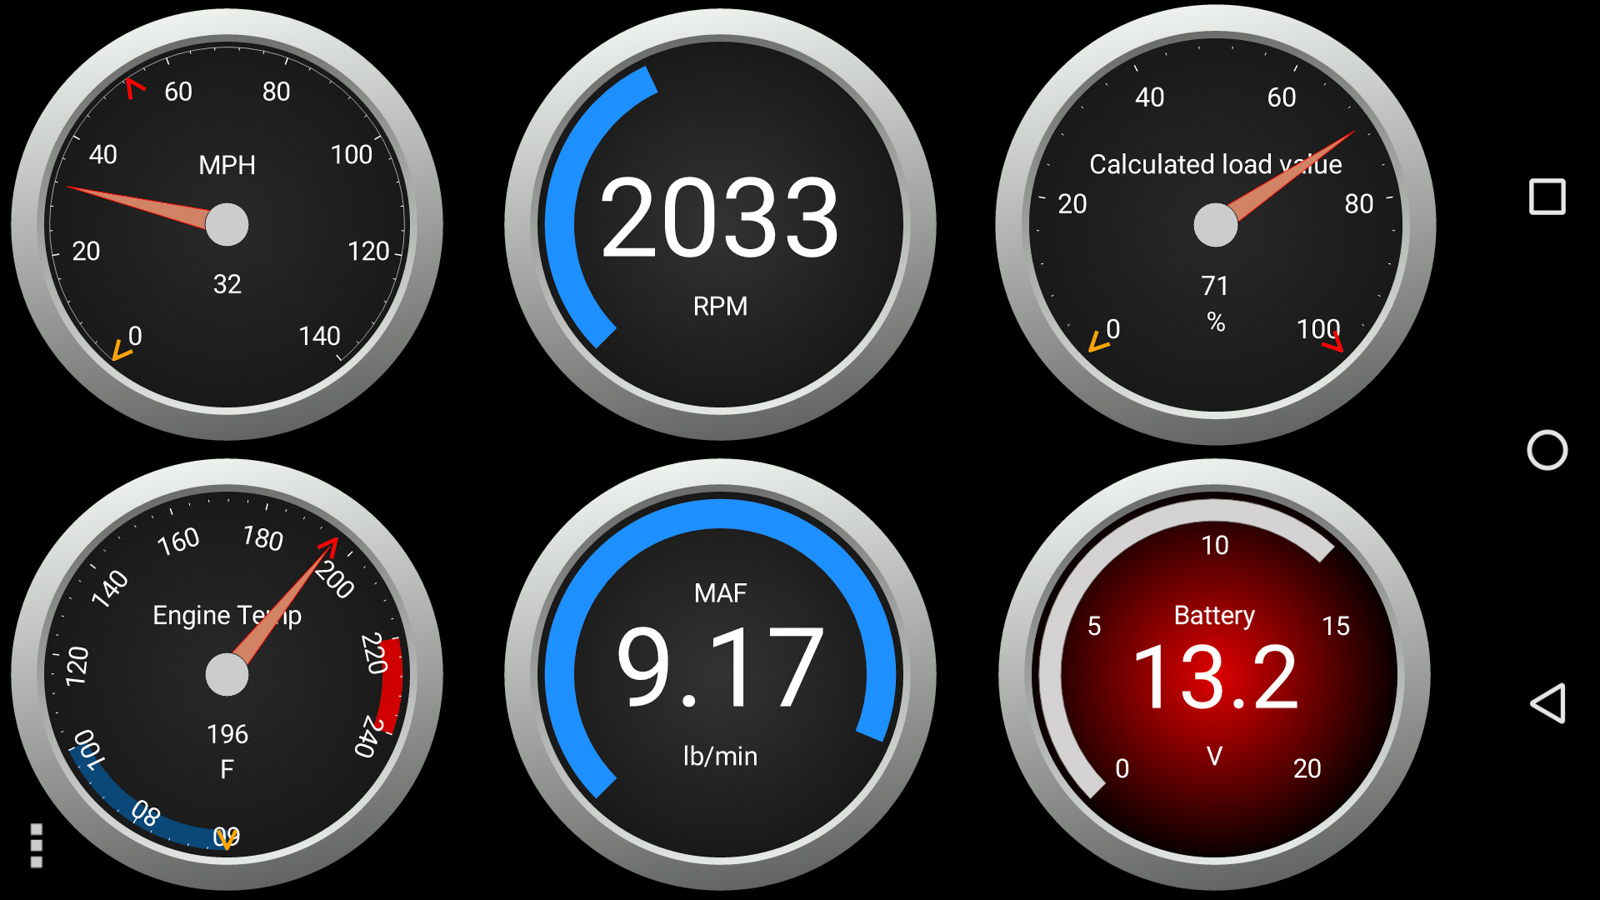 OBD Fusion had the clearest gauges. They don't try to mimic real-life gauges. Instead they use the phone display well.